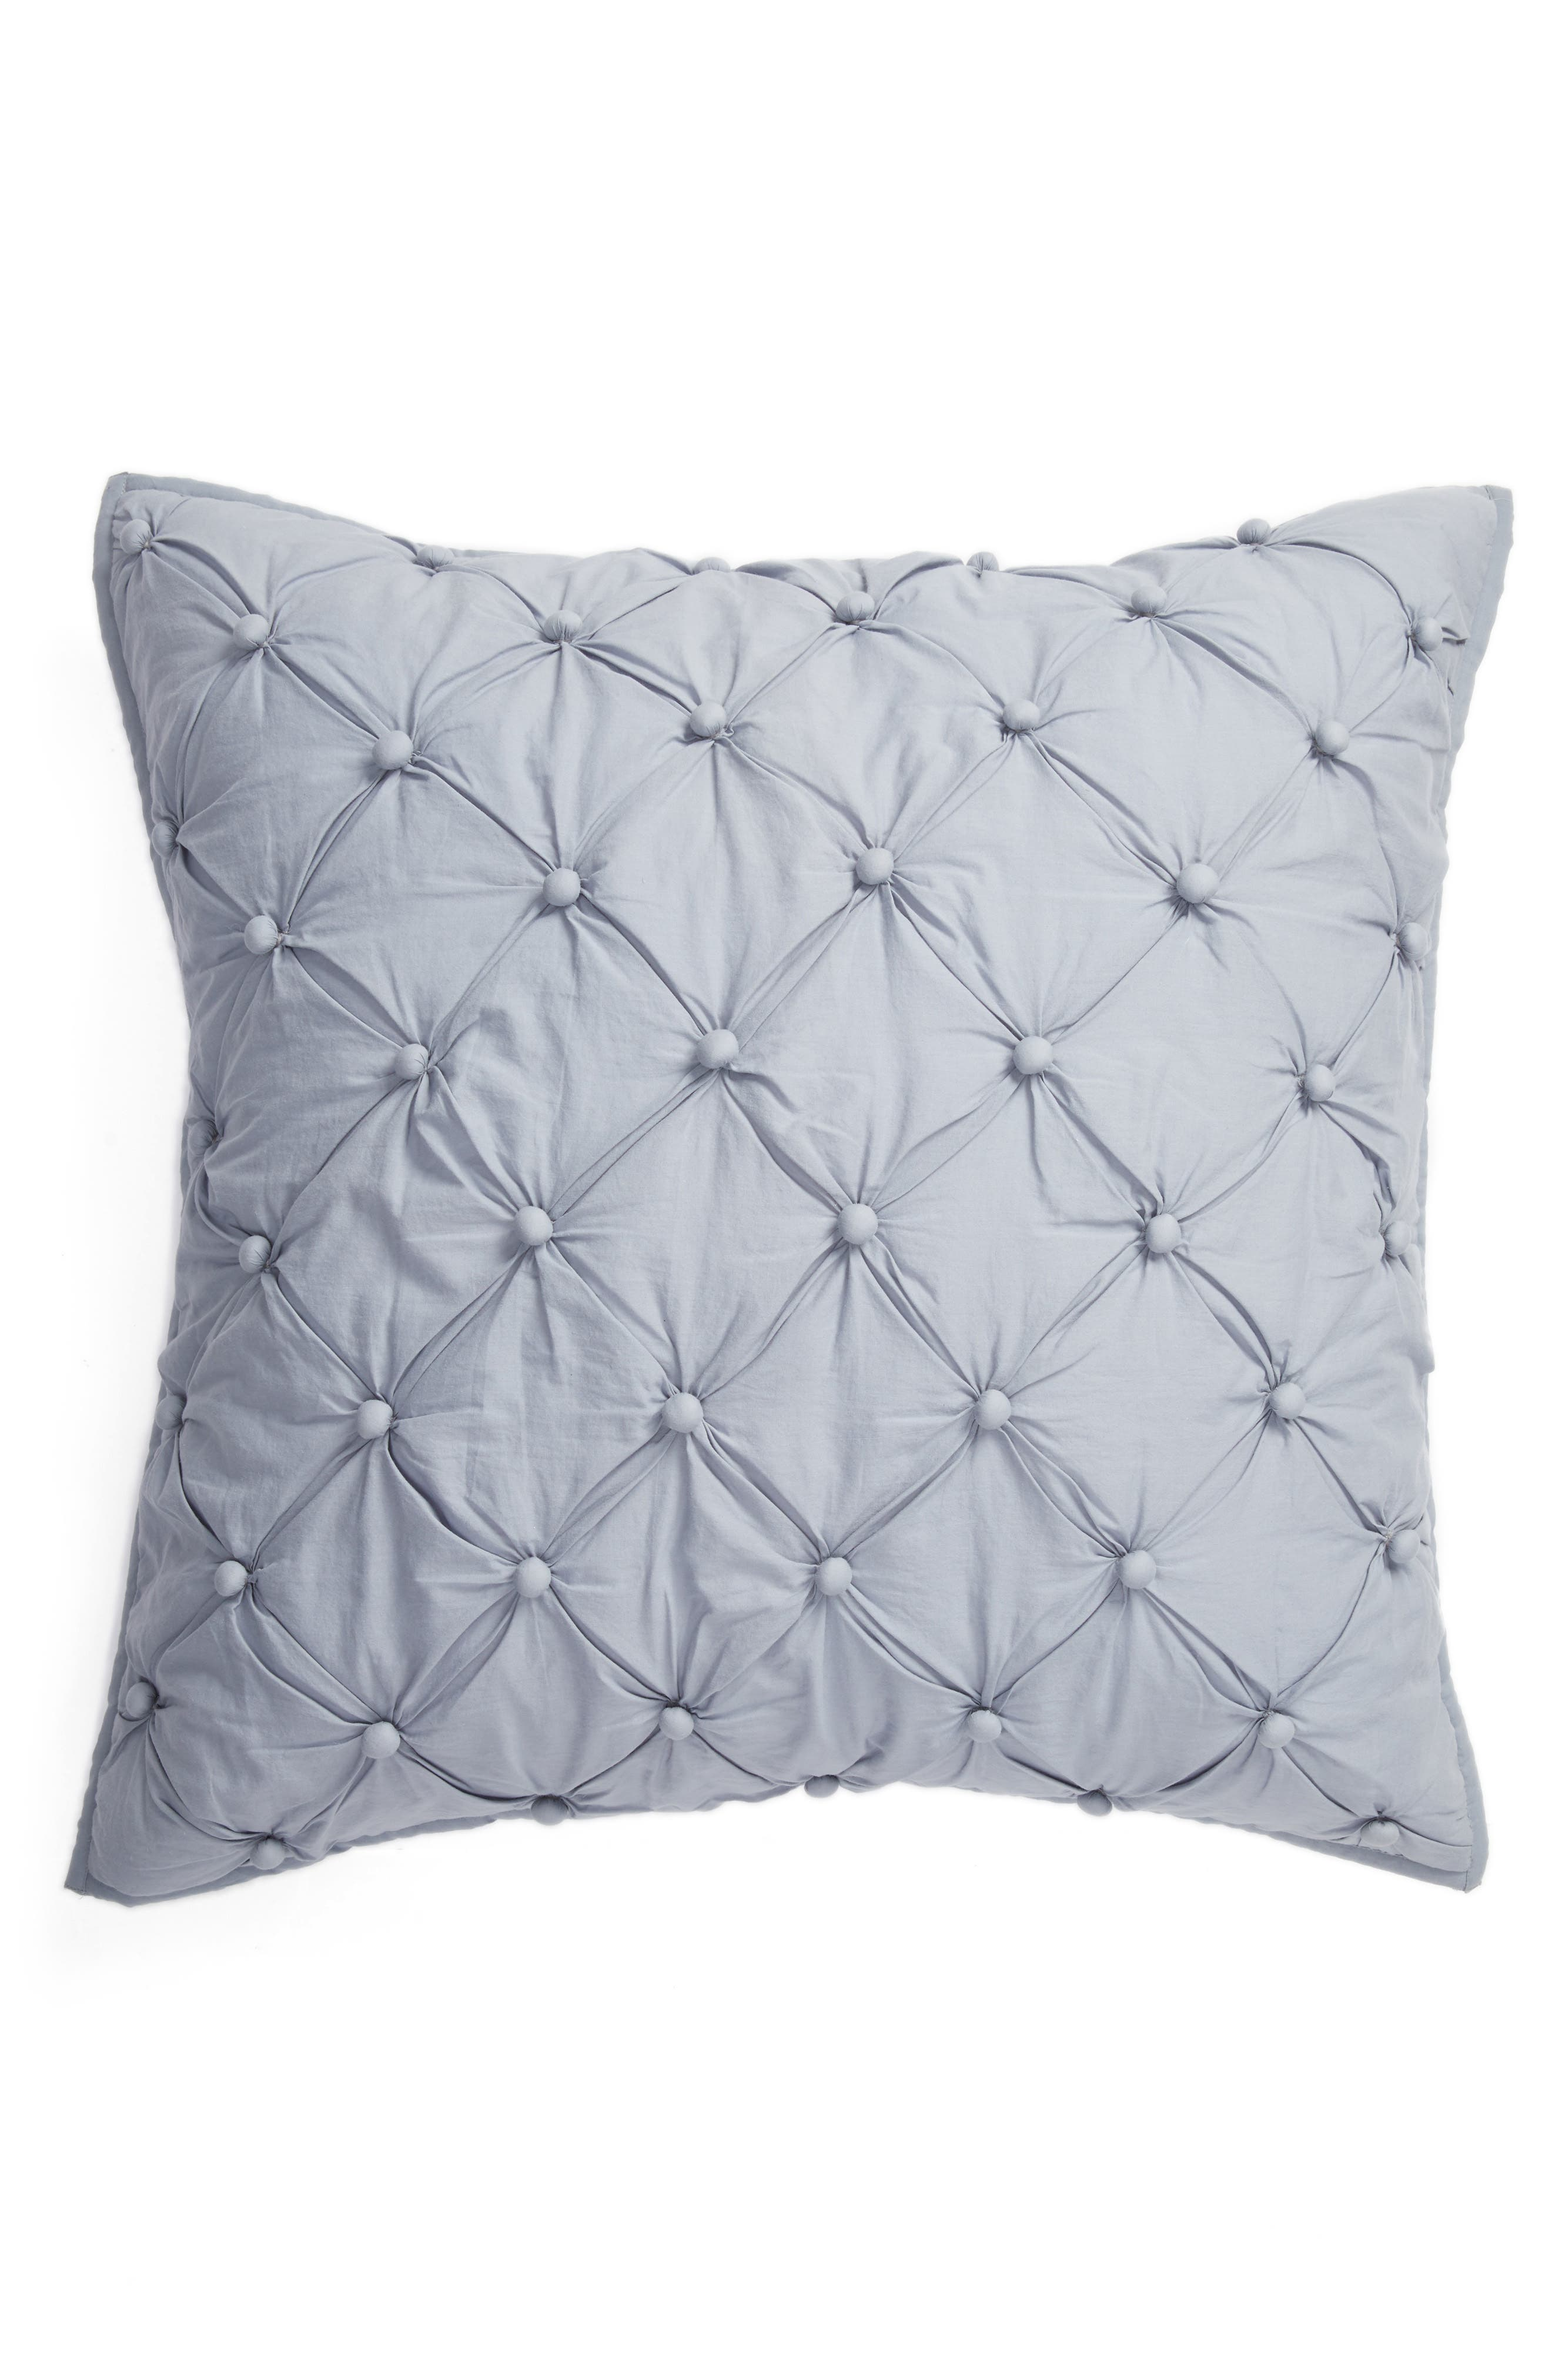 nordstrom at home euro sham